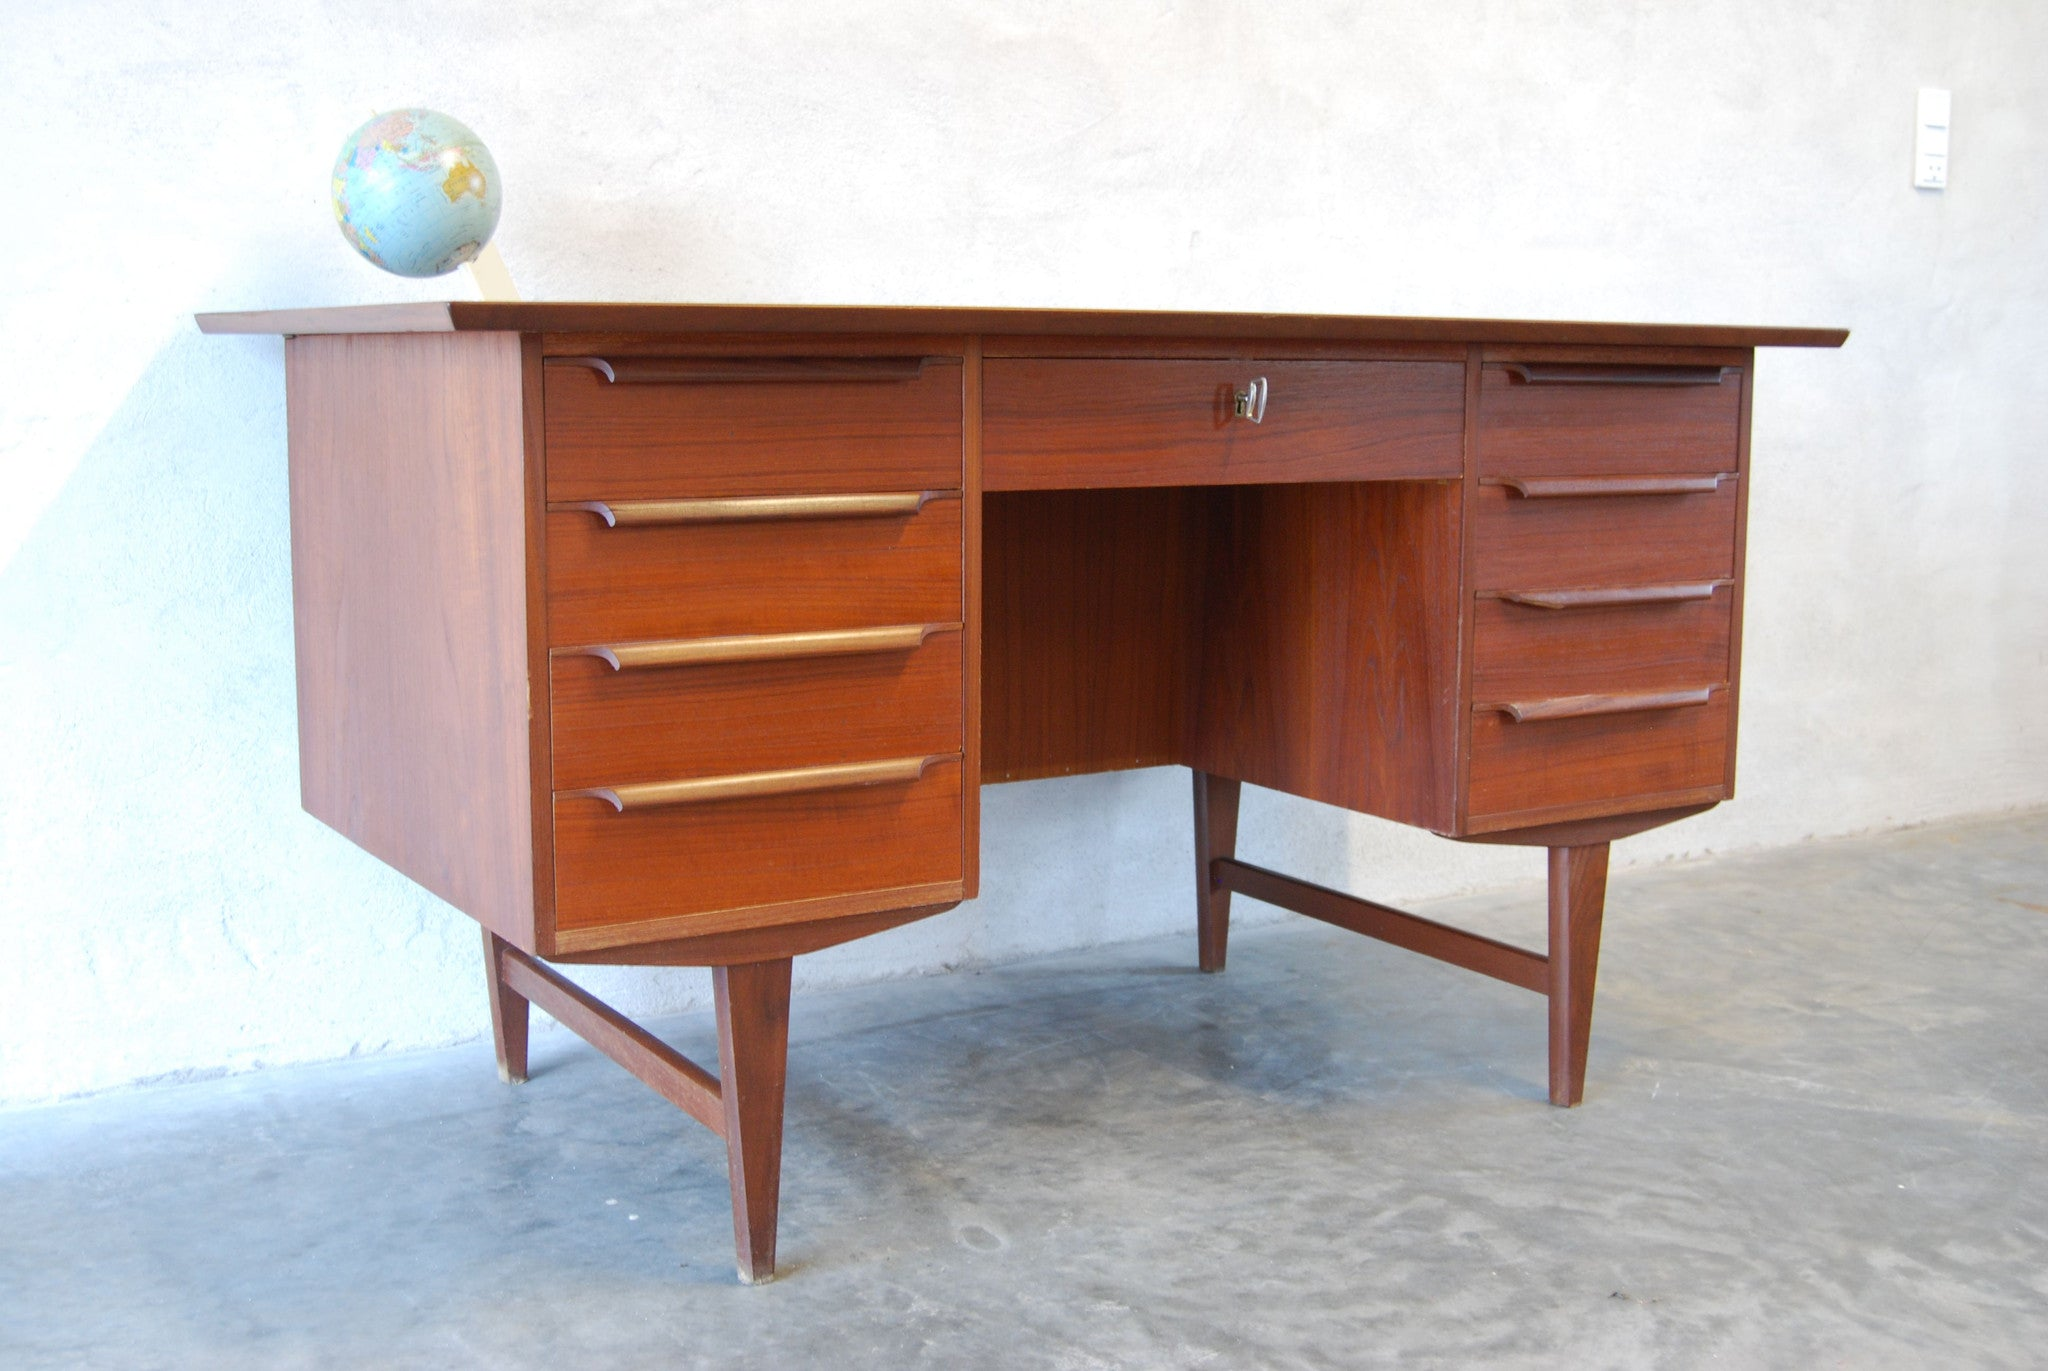 Chase & Sorensen Twin pedestal desk in teak